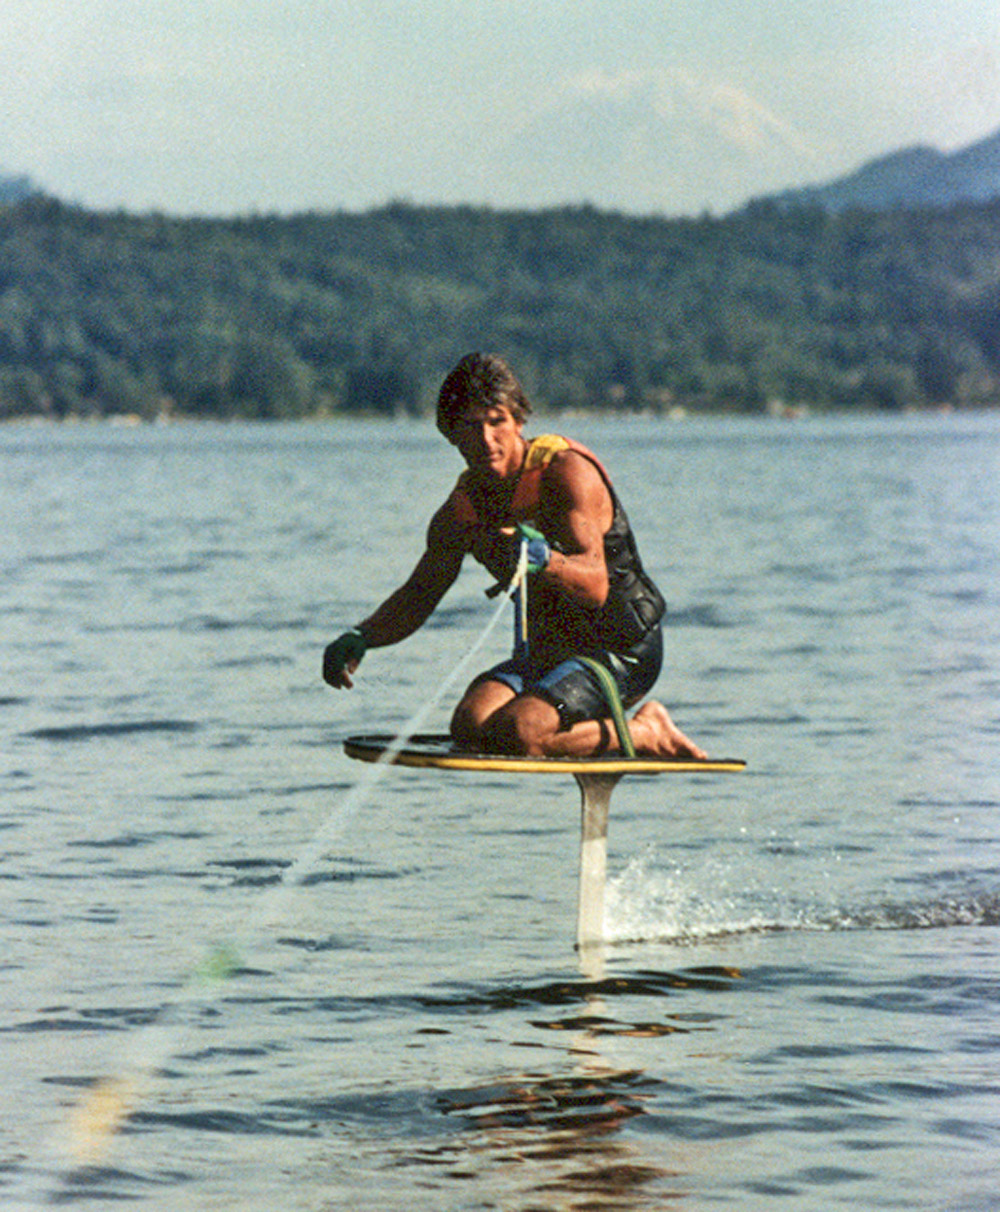 adventures-water-skiing-hydrofoiling-1986-mike-murphys-kneeboard